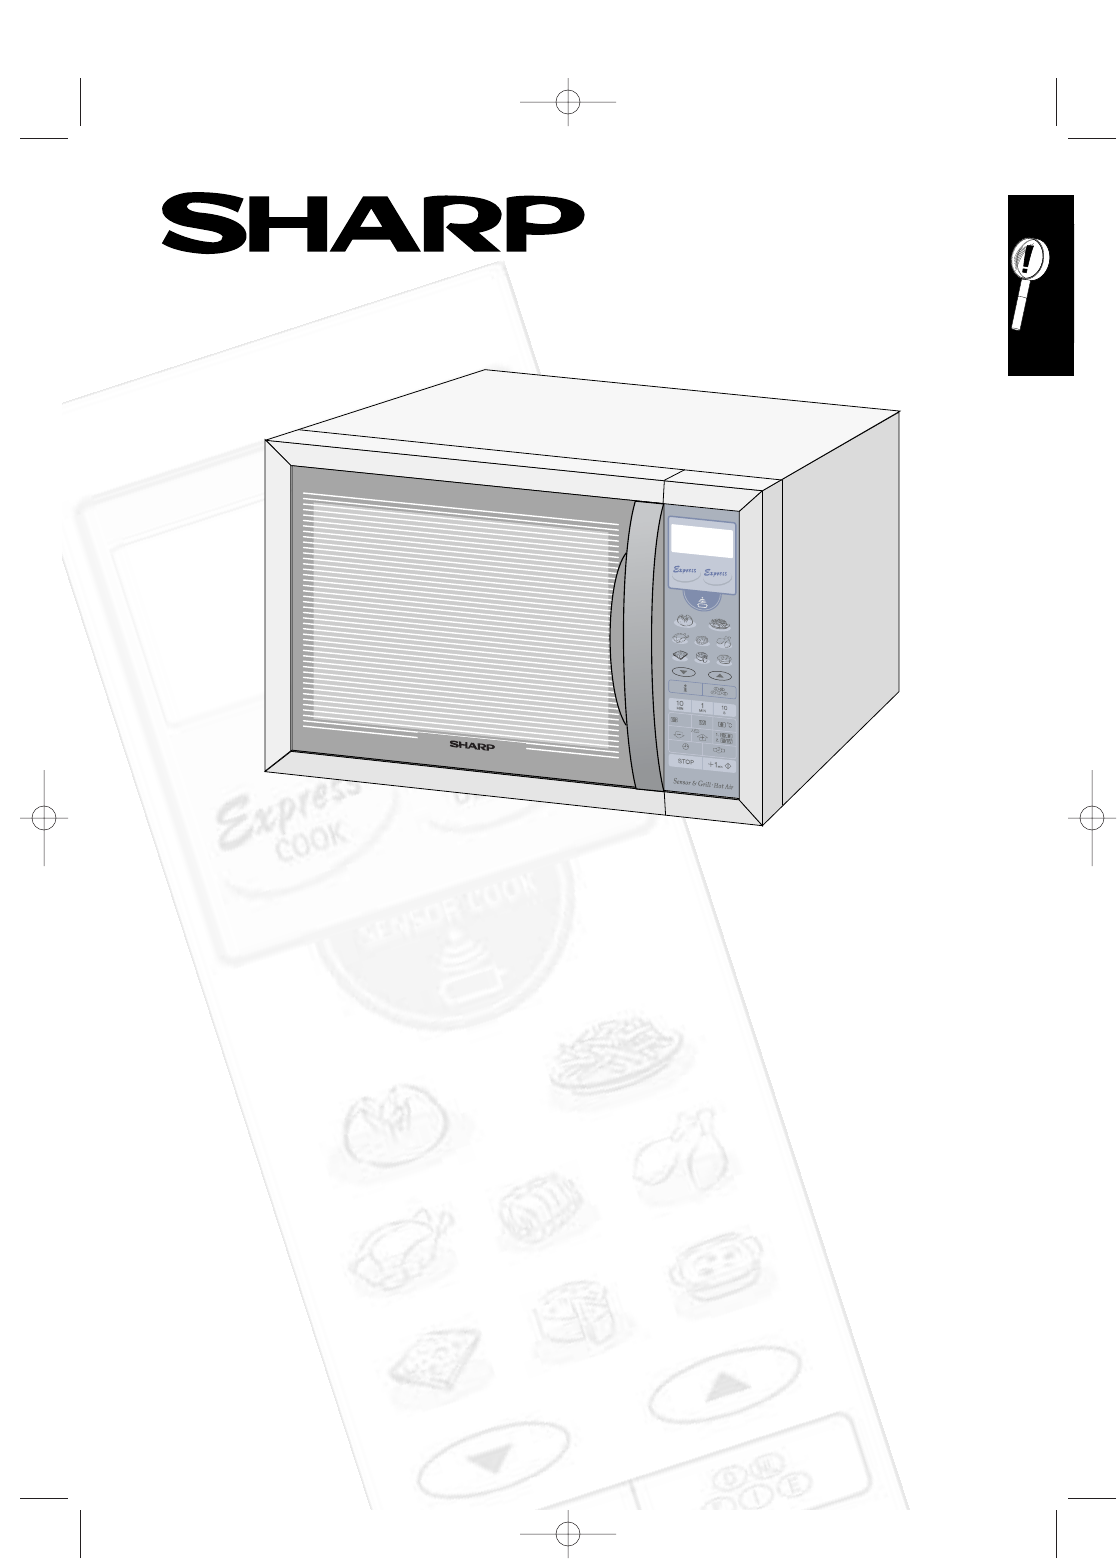 sharp convection oven r 963s user guide manualsonline com rh kitchen manualsonline com sharp microwave manual r3a87 sharp microwave manual r-1850a